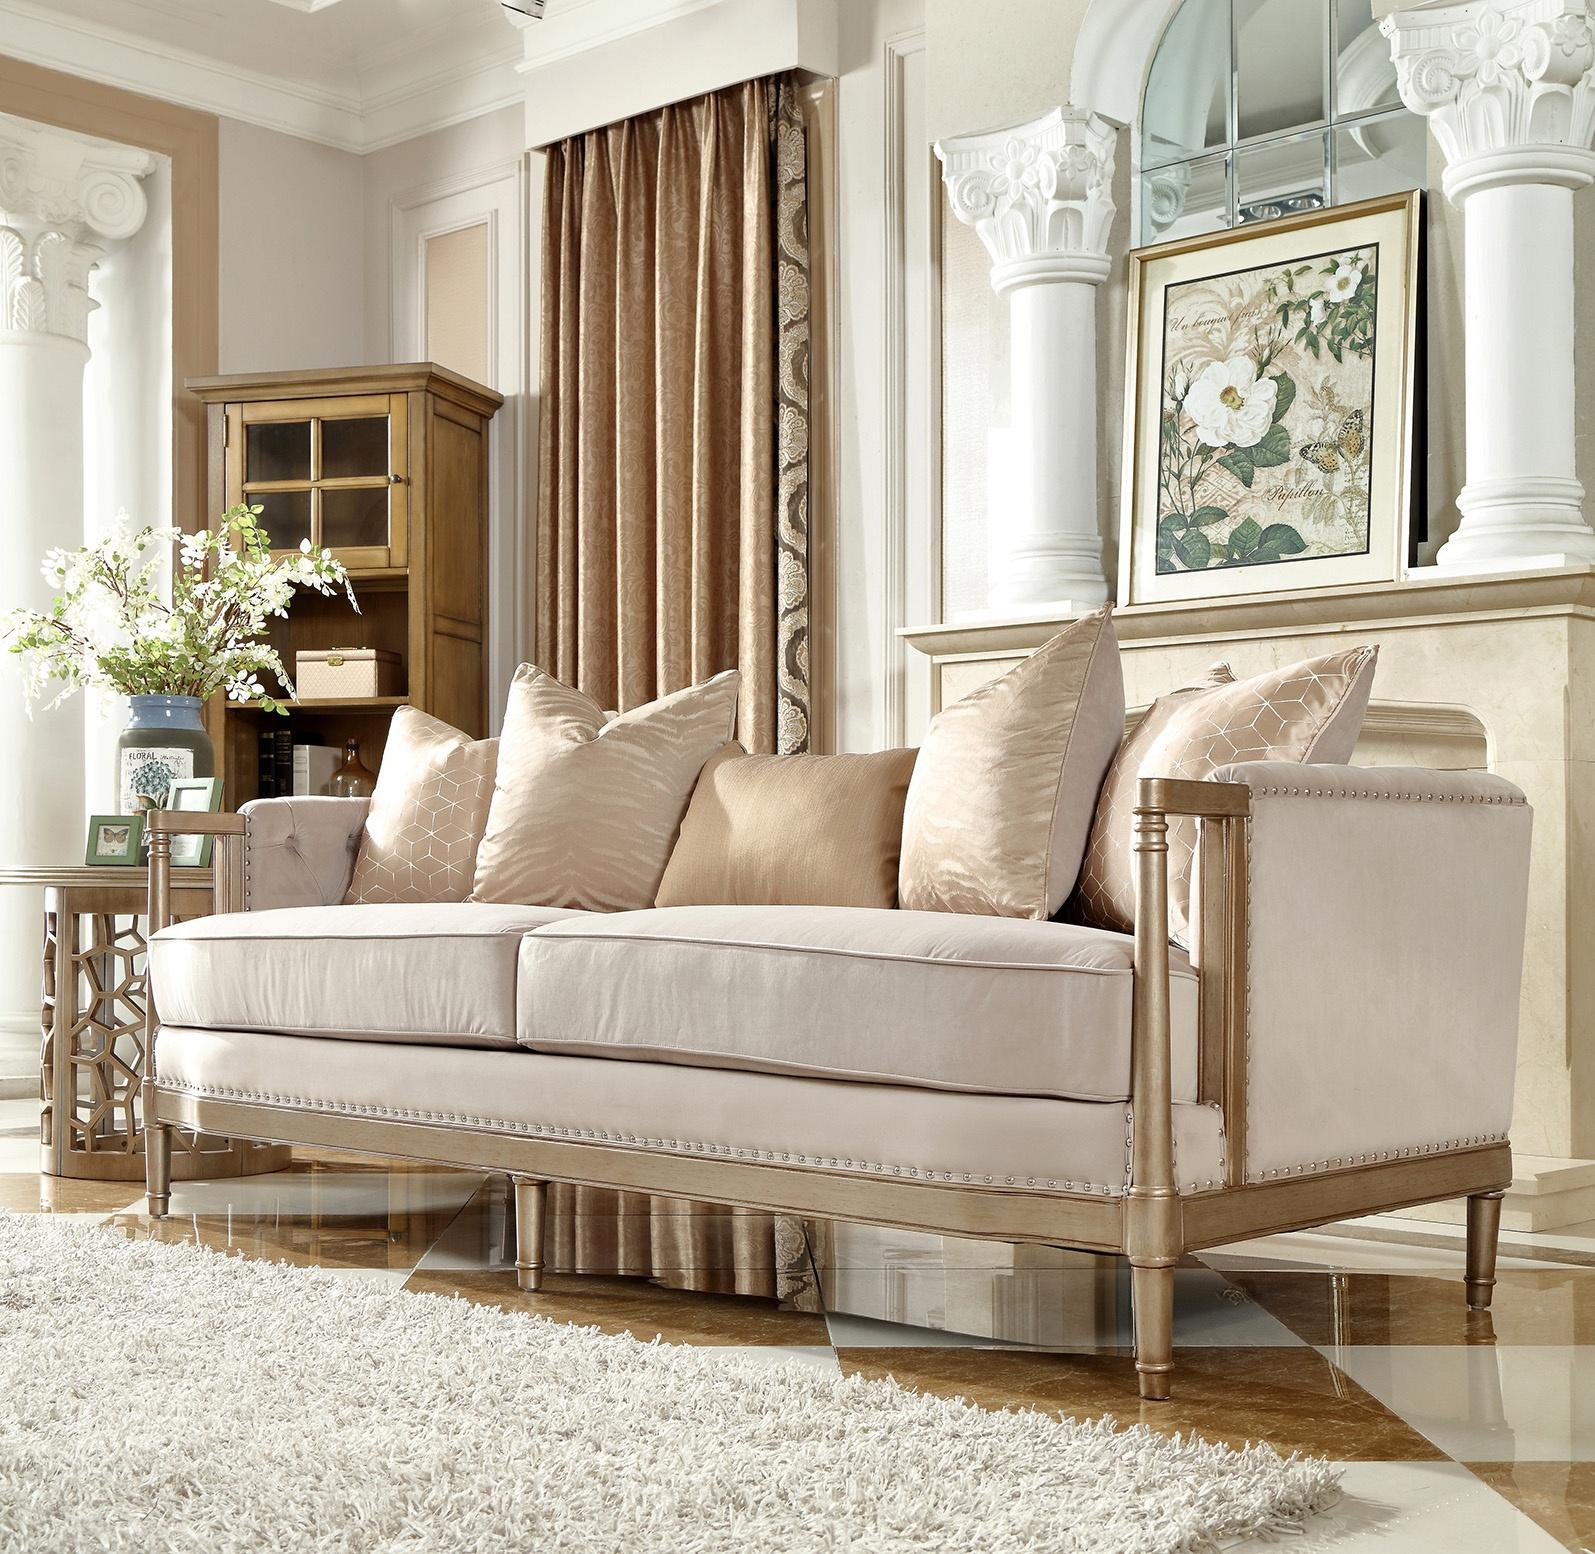 Traditional Champagne Fabric and Fabric, Wood Sofa 1 pcs HD-625 by Homey Design